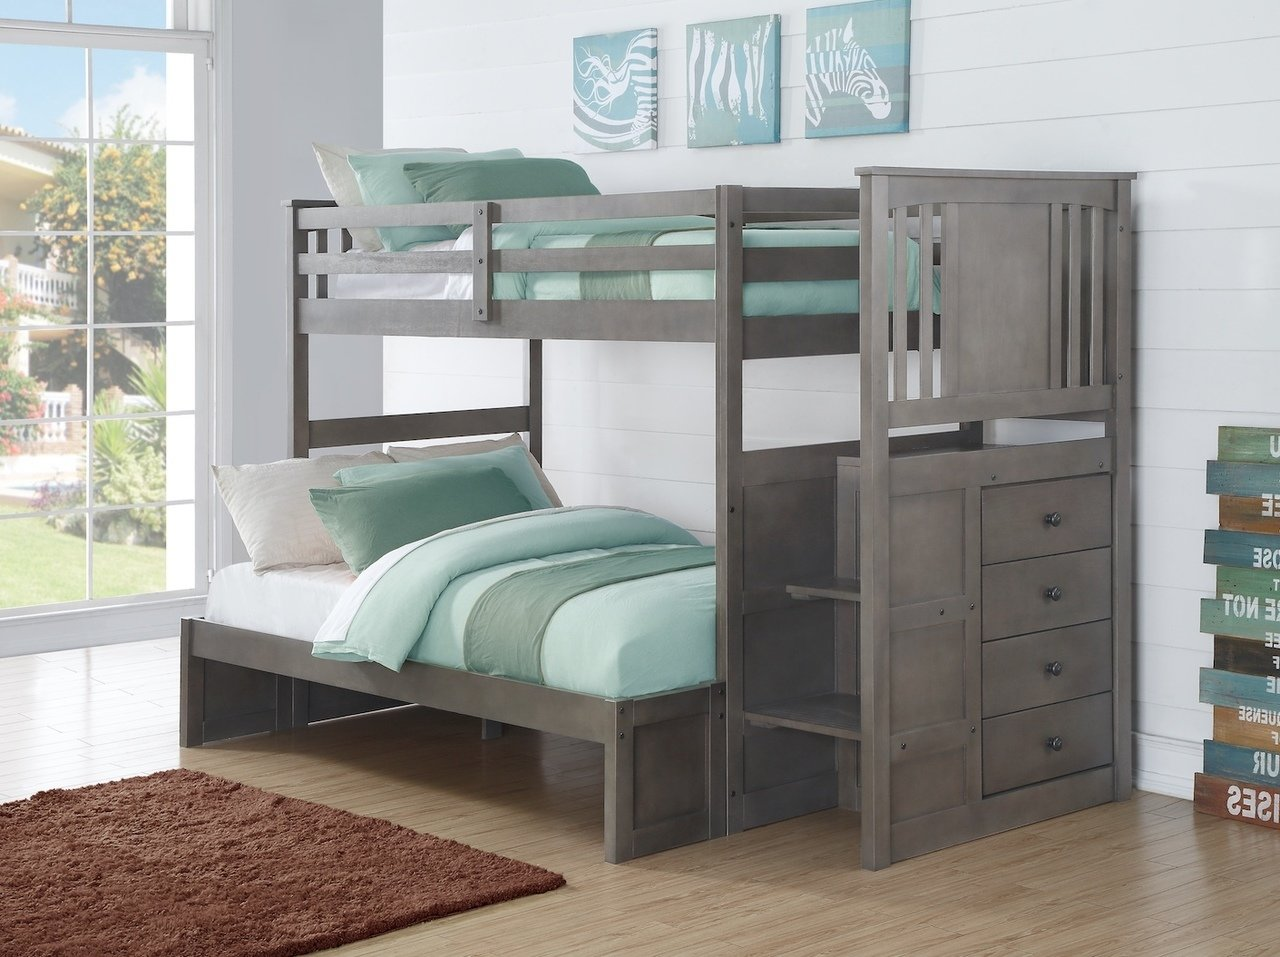 Donco Kids Twin Stairway Bunkbed